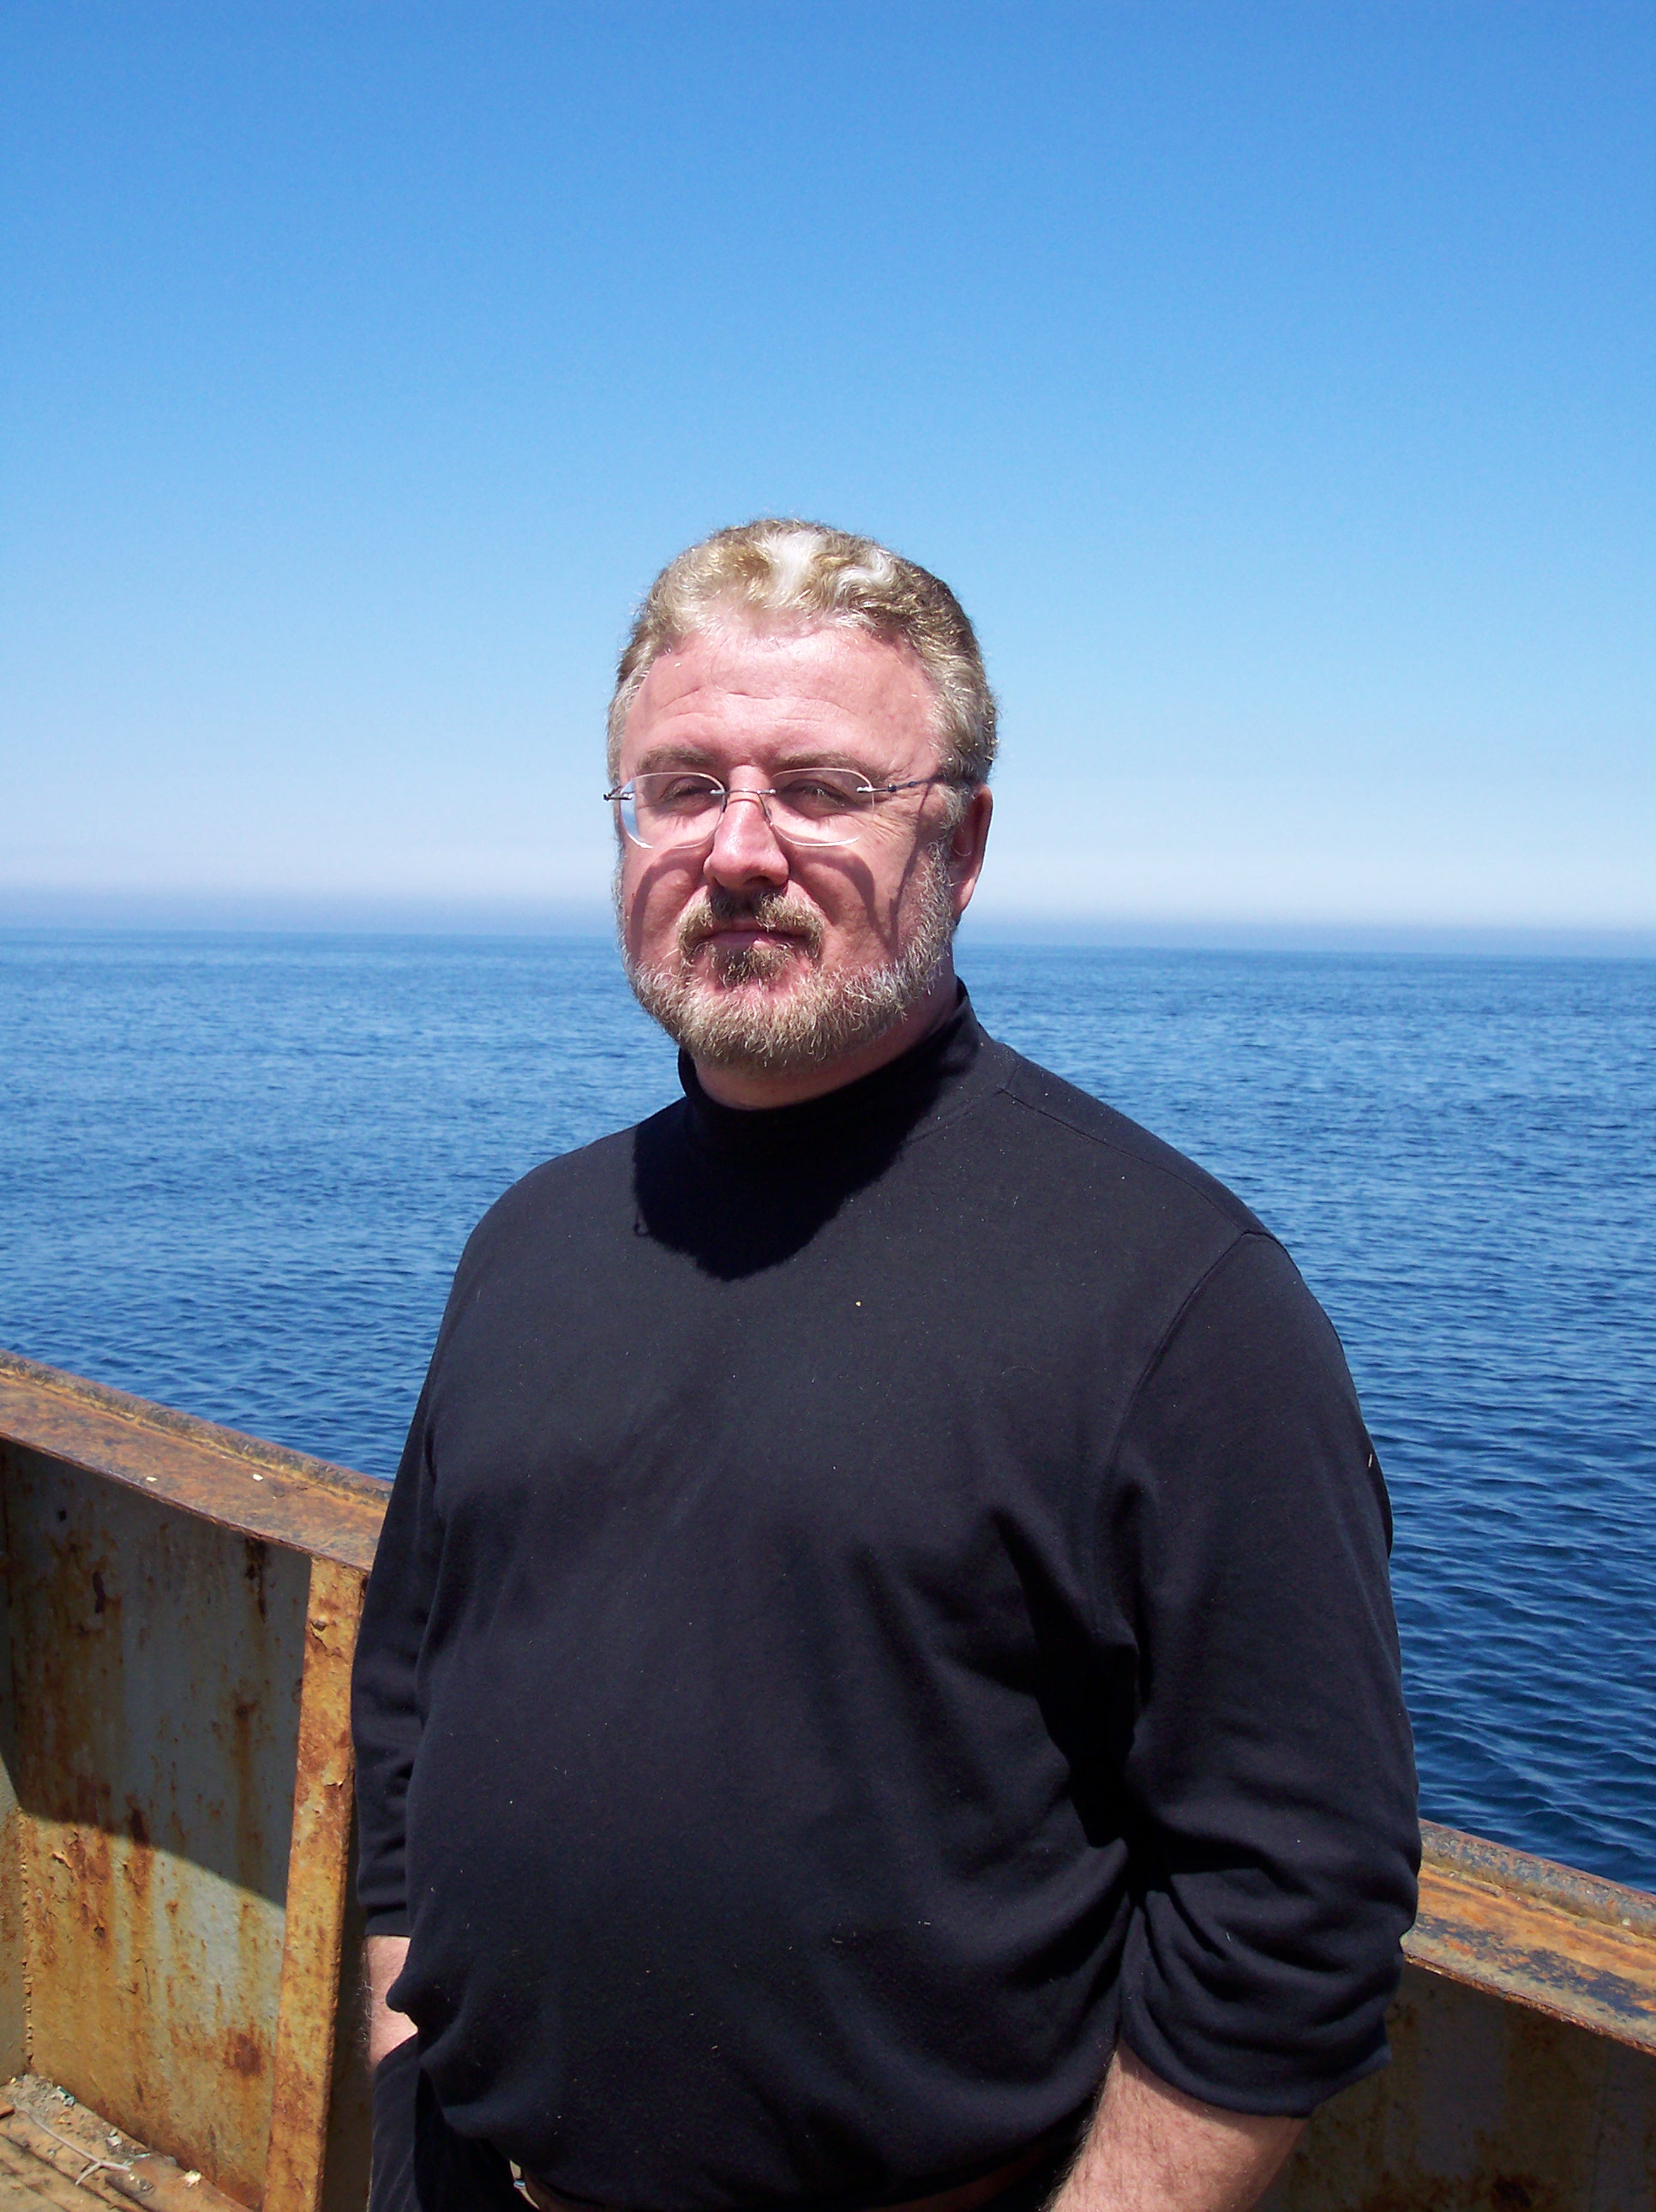 002 Jim Delgado, a legend in shipwreck research and archeology